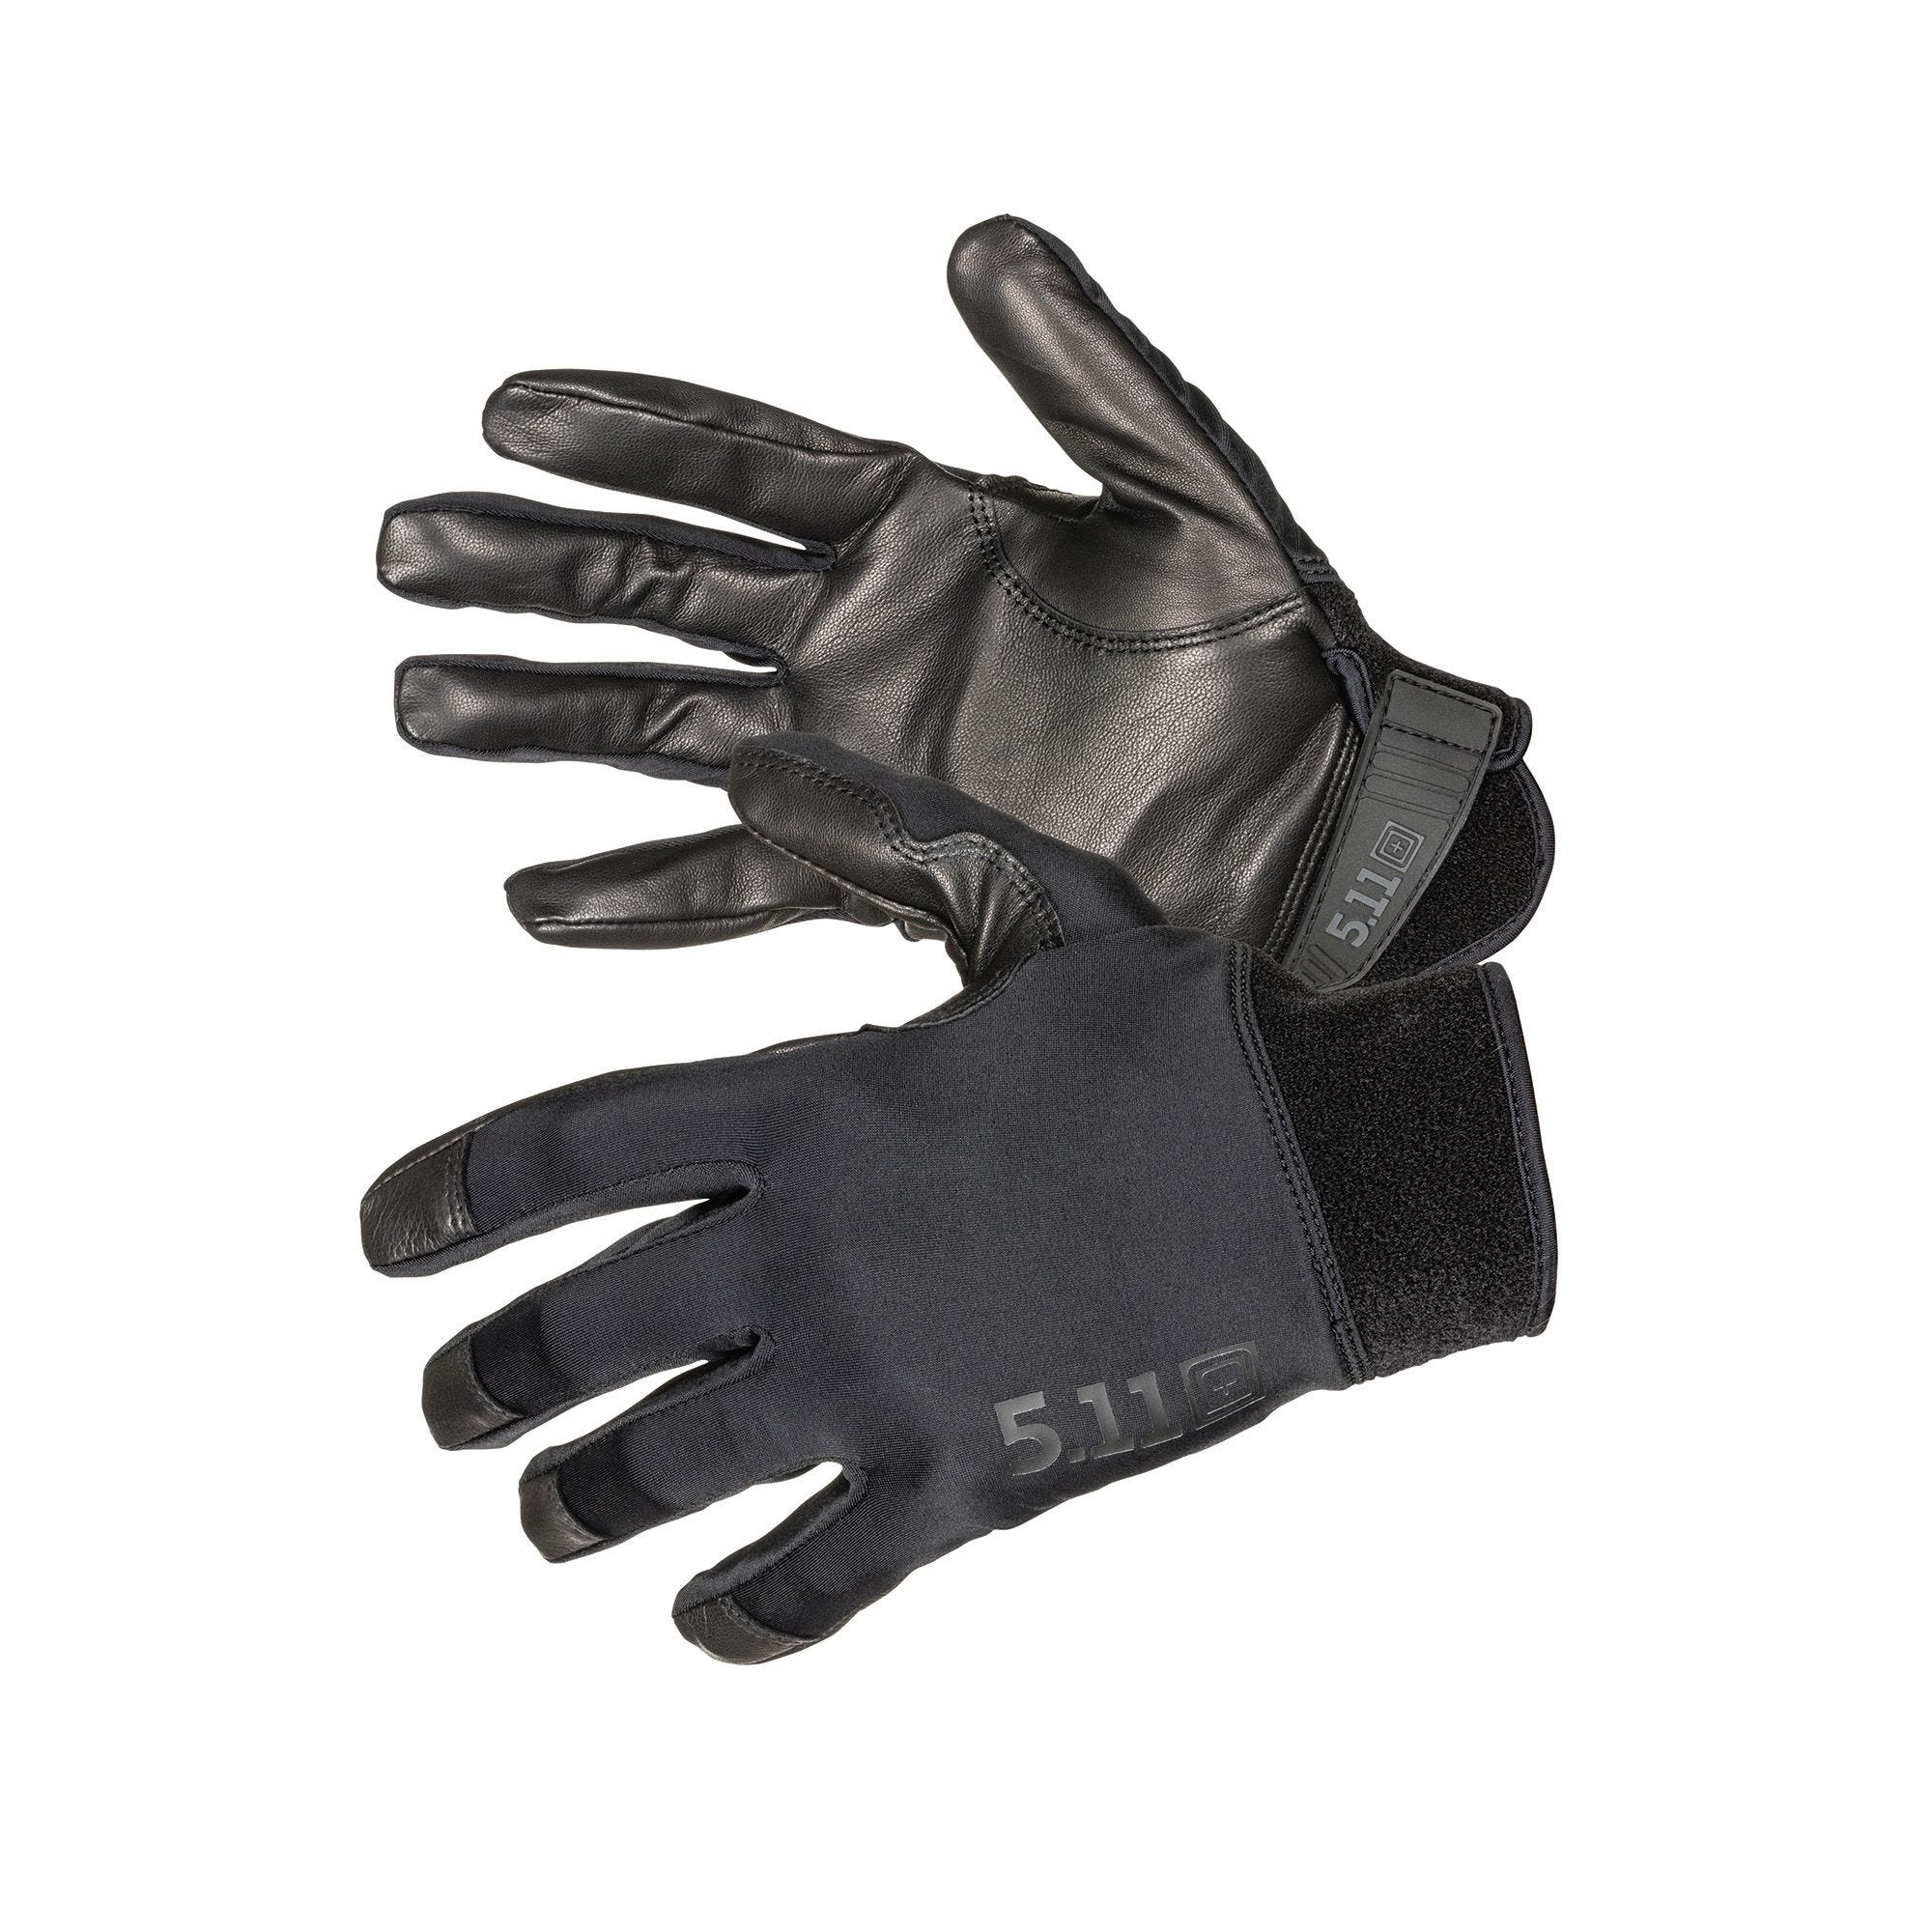 5.11 Tactical 5.11 Tactical Taclite 3 Glove